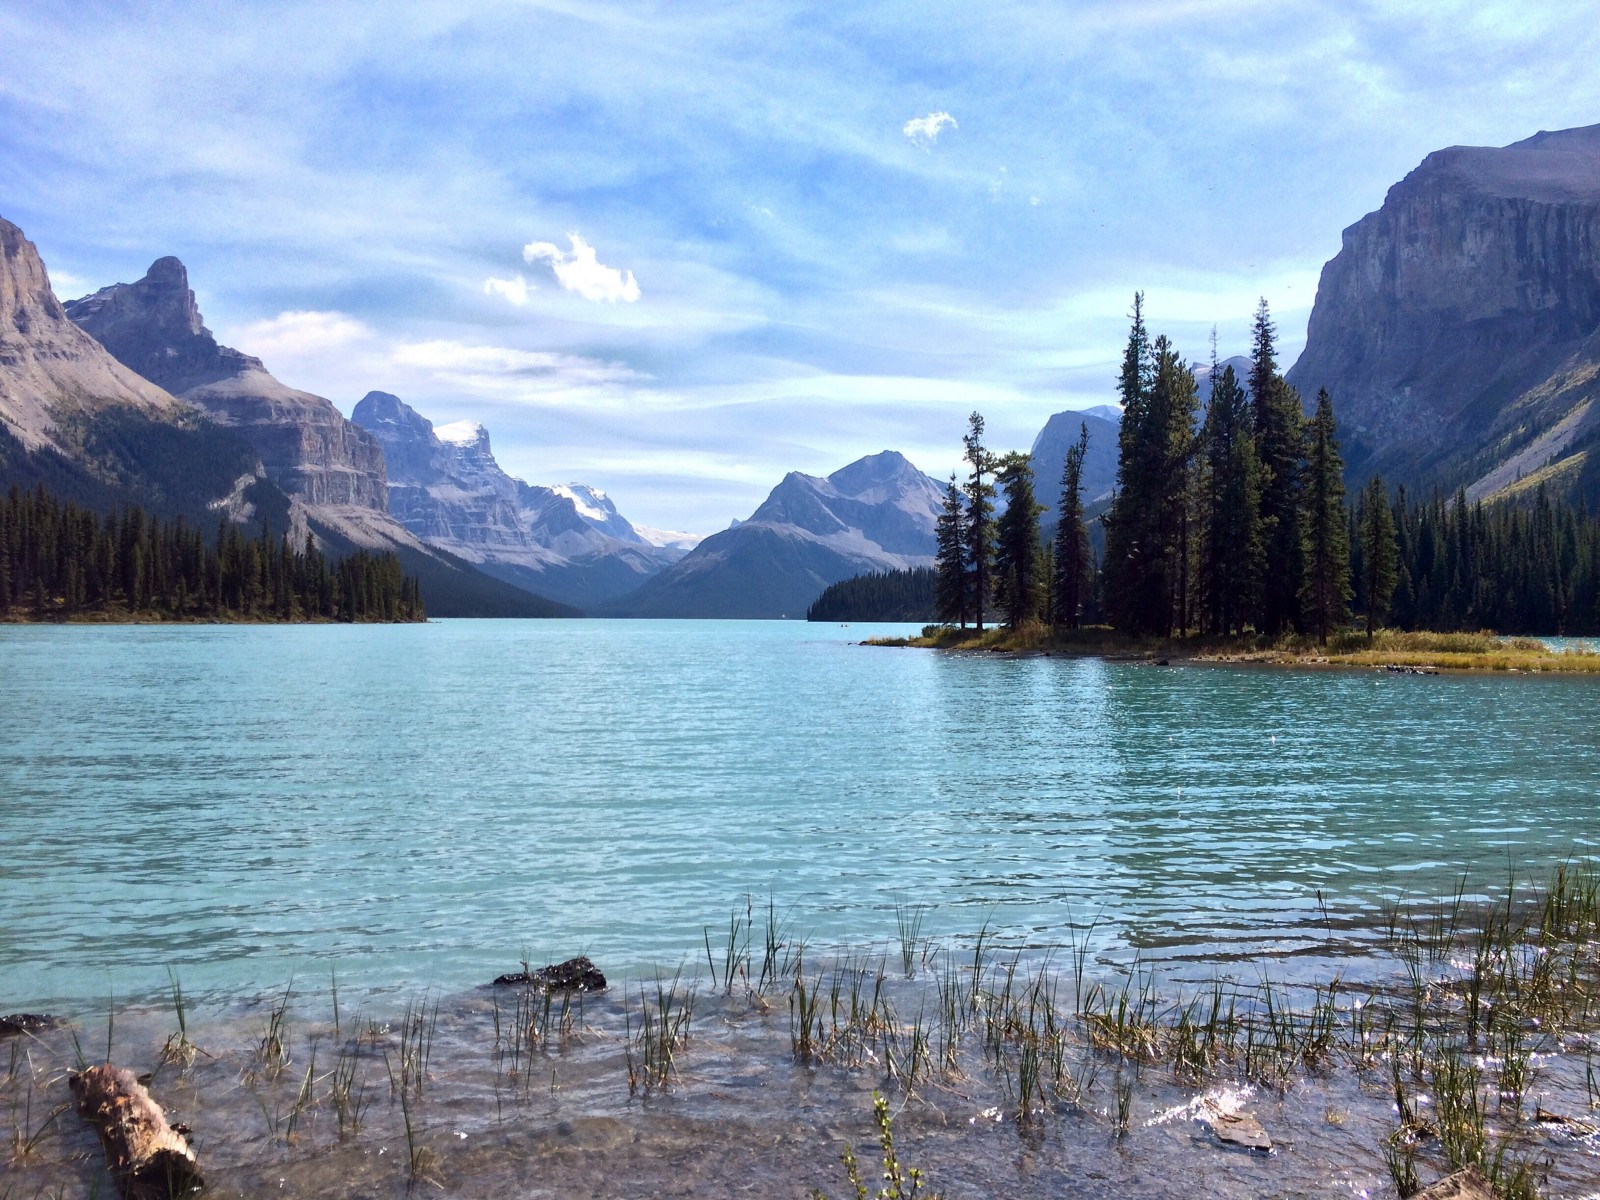 Maligne Lake Is One Of The Most Beautiful Places Ive Ever Been Paid To Go I Remember Standing On Shore Spirit Island Far End